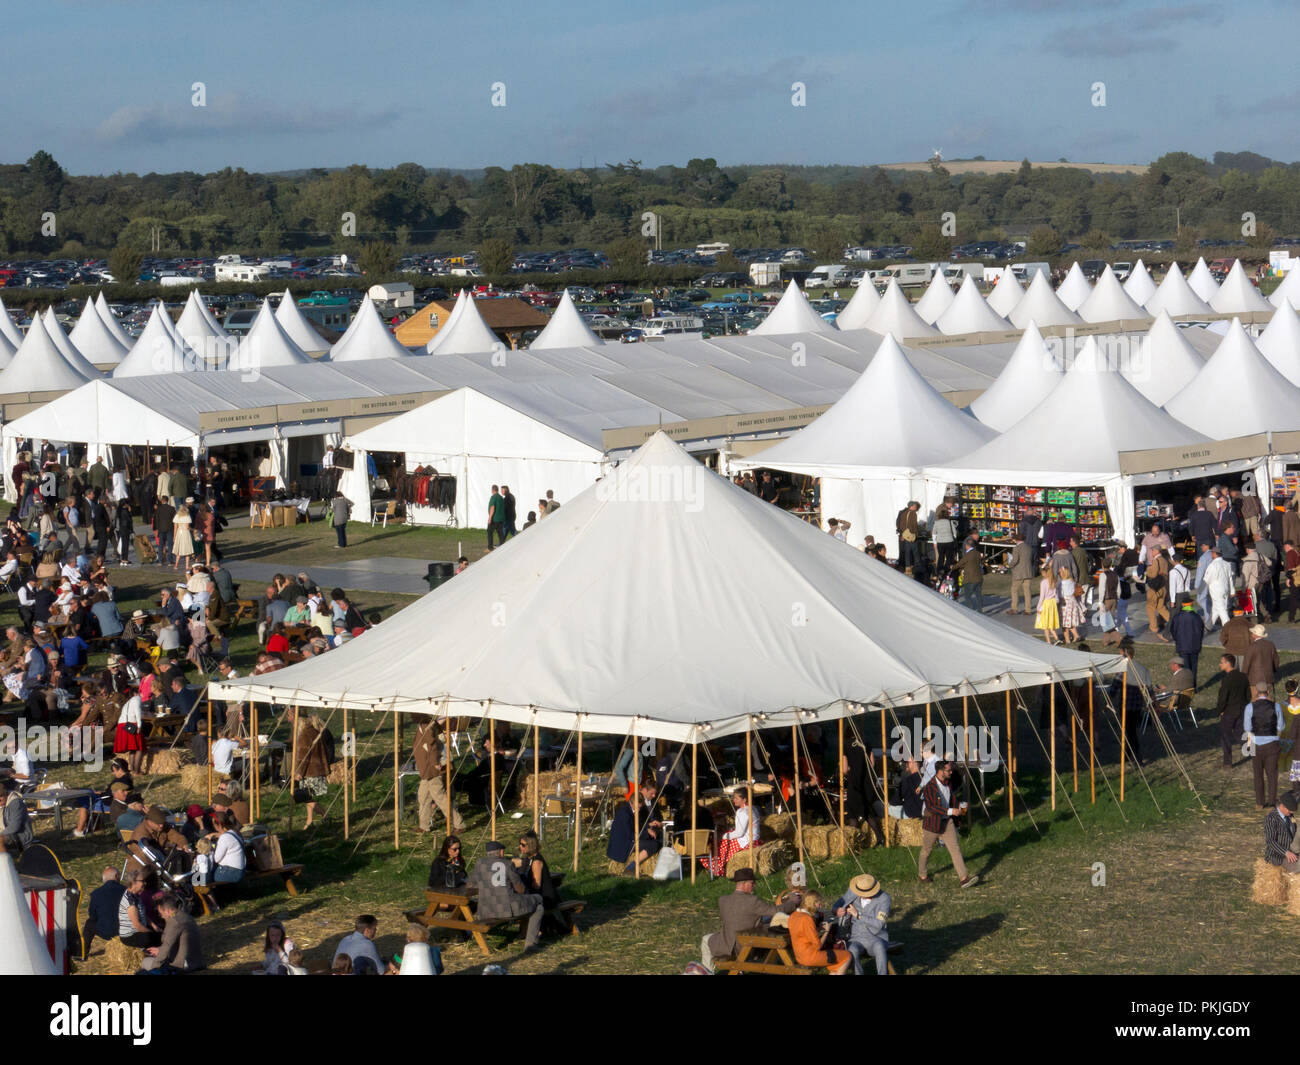 Goodwood Revival, Chichester, West Sussex, England Stockbild